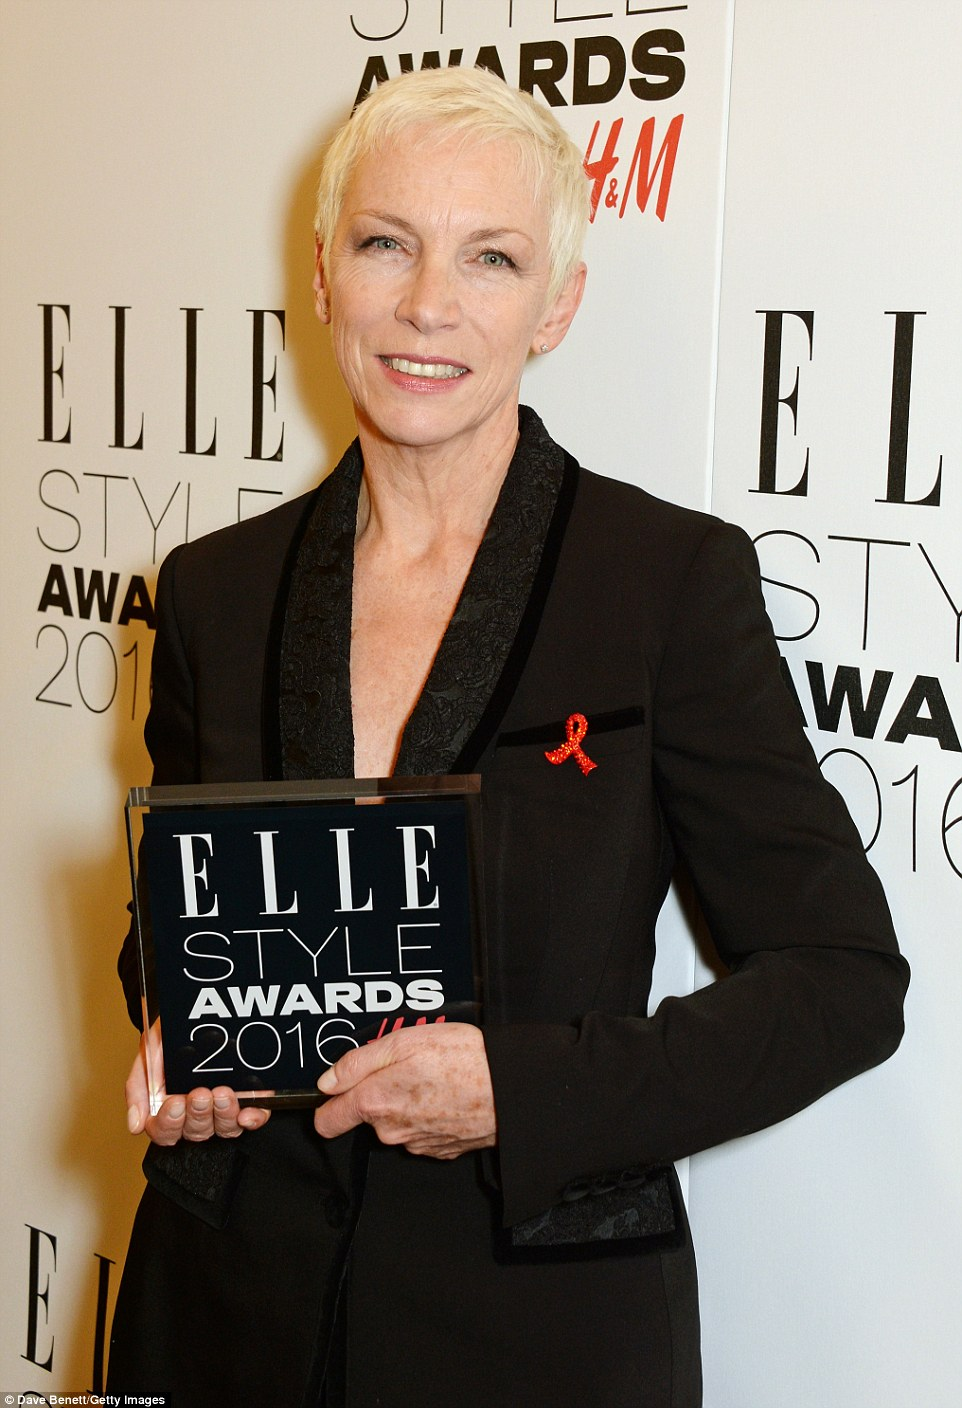 Class act: Singer and philanthropist Annie Lennox was feted with the Outstanding Achievement trophy